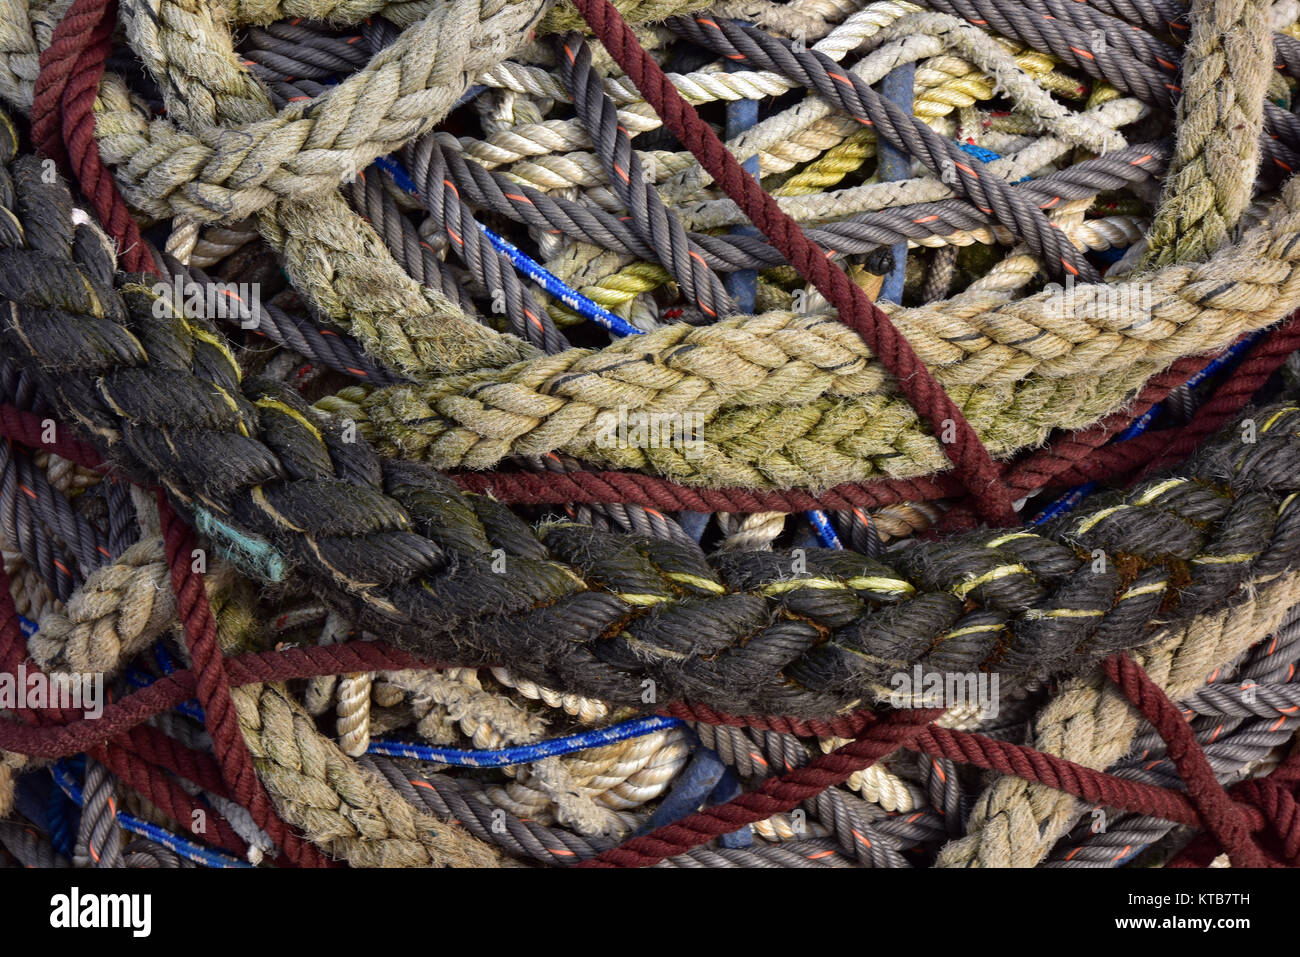 a big knotted mess of lots of differently sized and colourful ropes tied together in a tangle. coloured ropes and - Stock Image